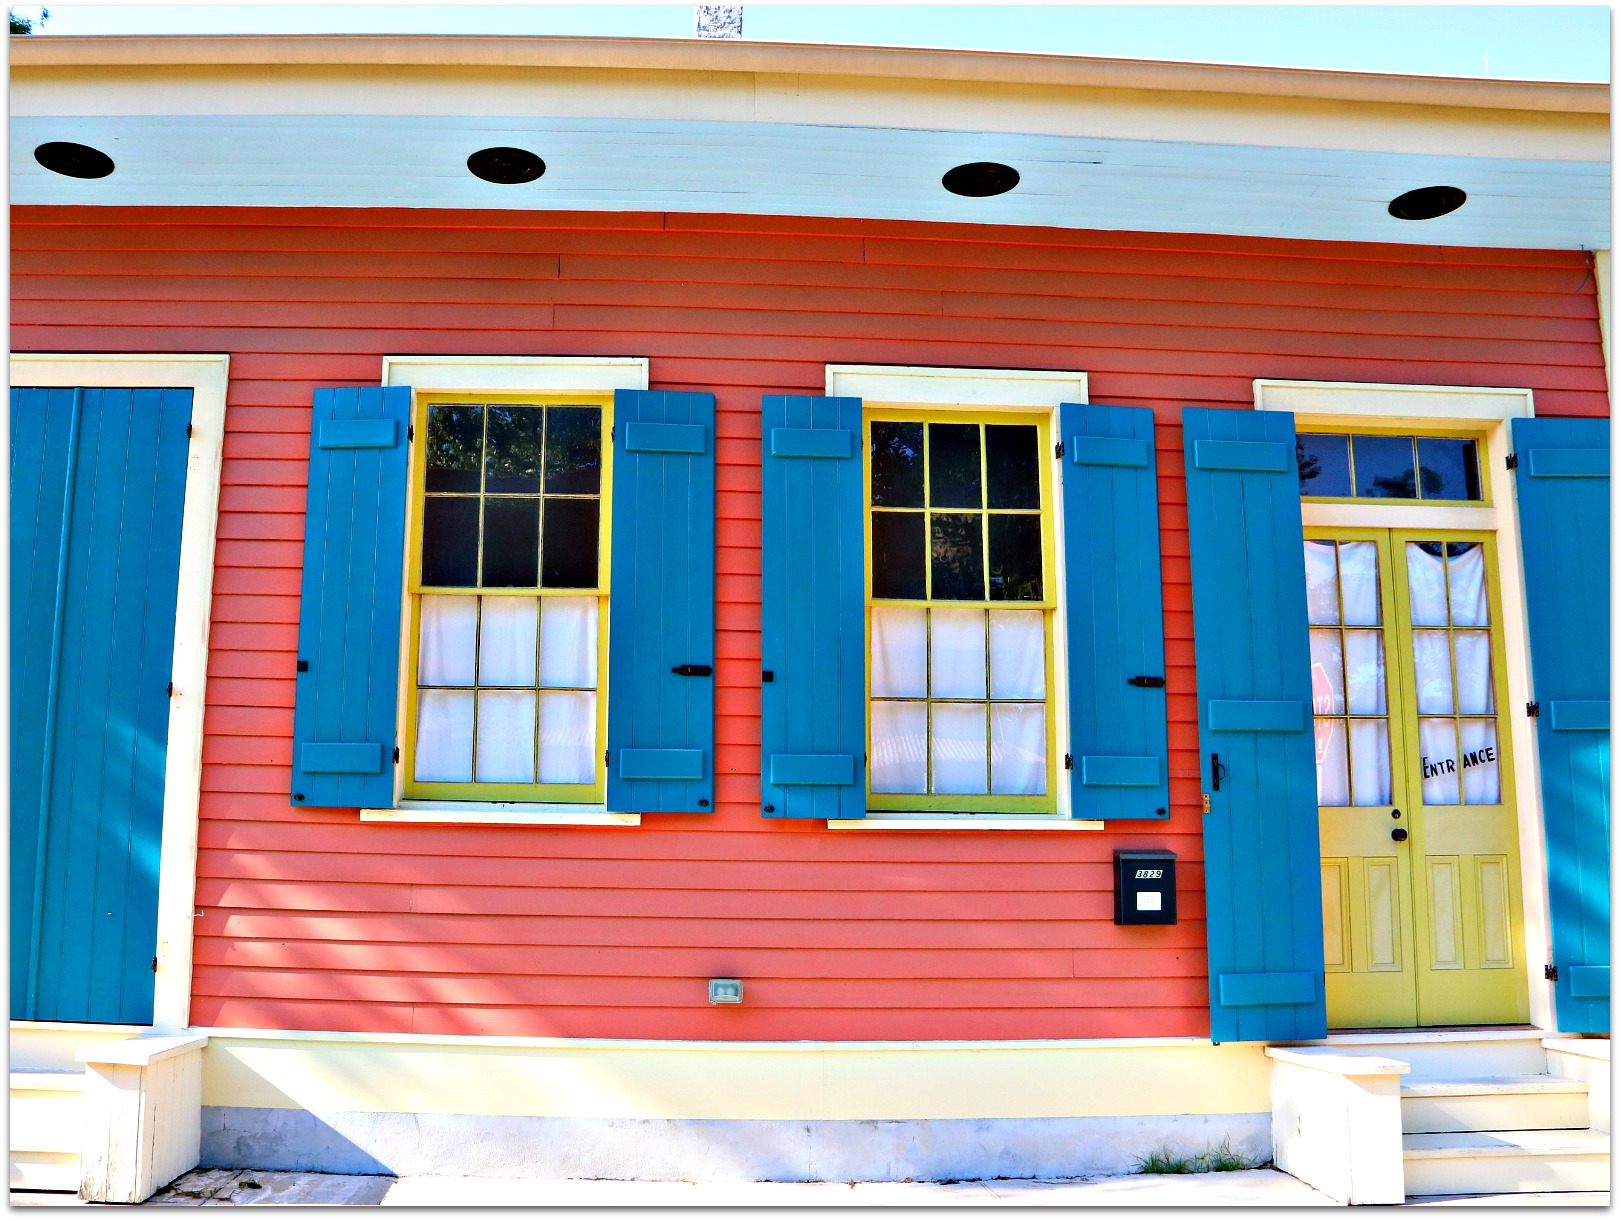 Bywater homes doors windows and shutters are colorful for Home windows and doors